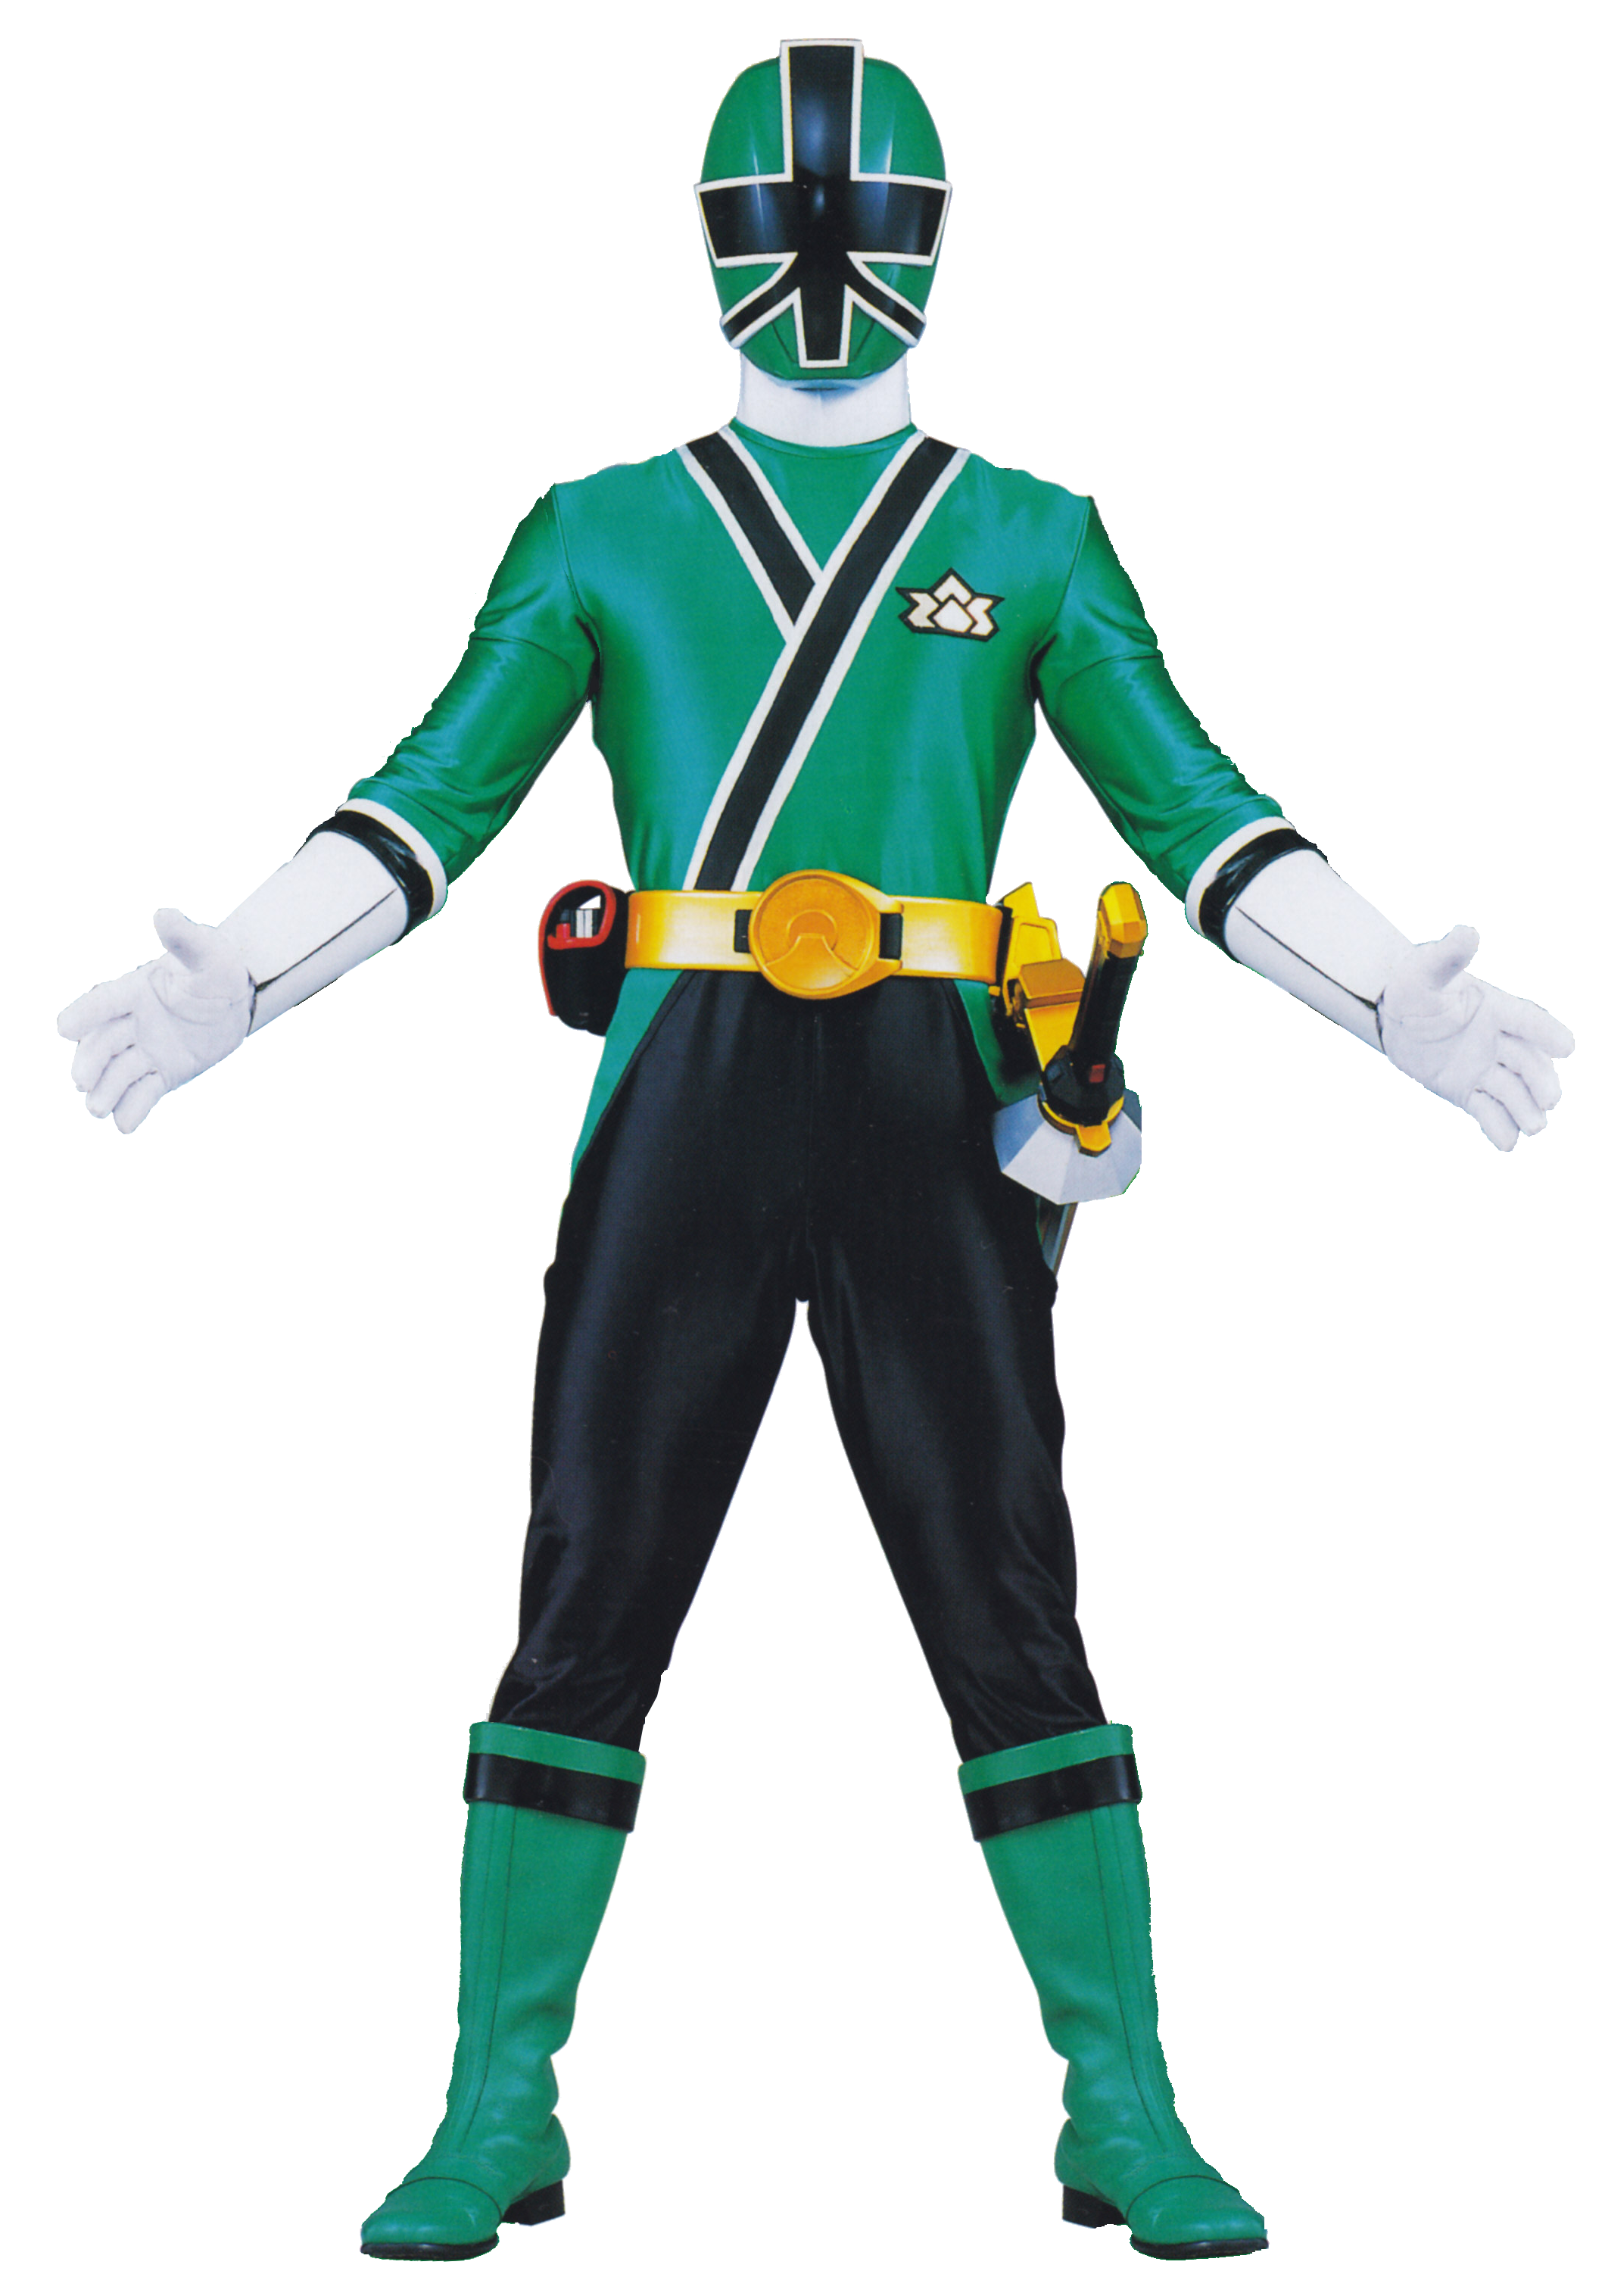 Samurai transparent green. I searched for power